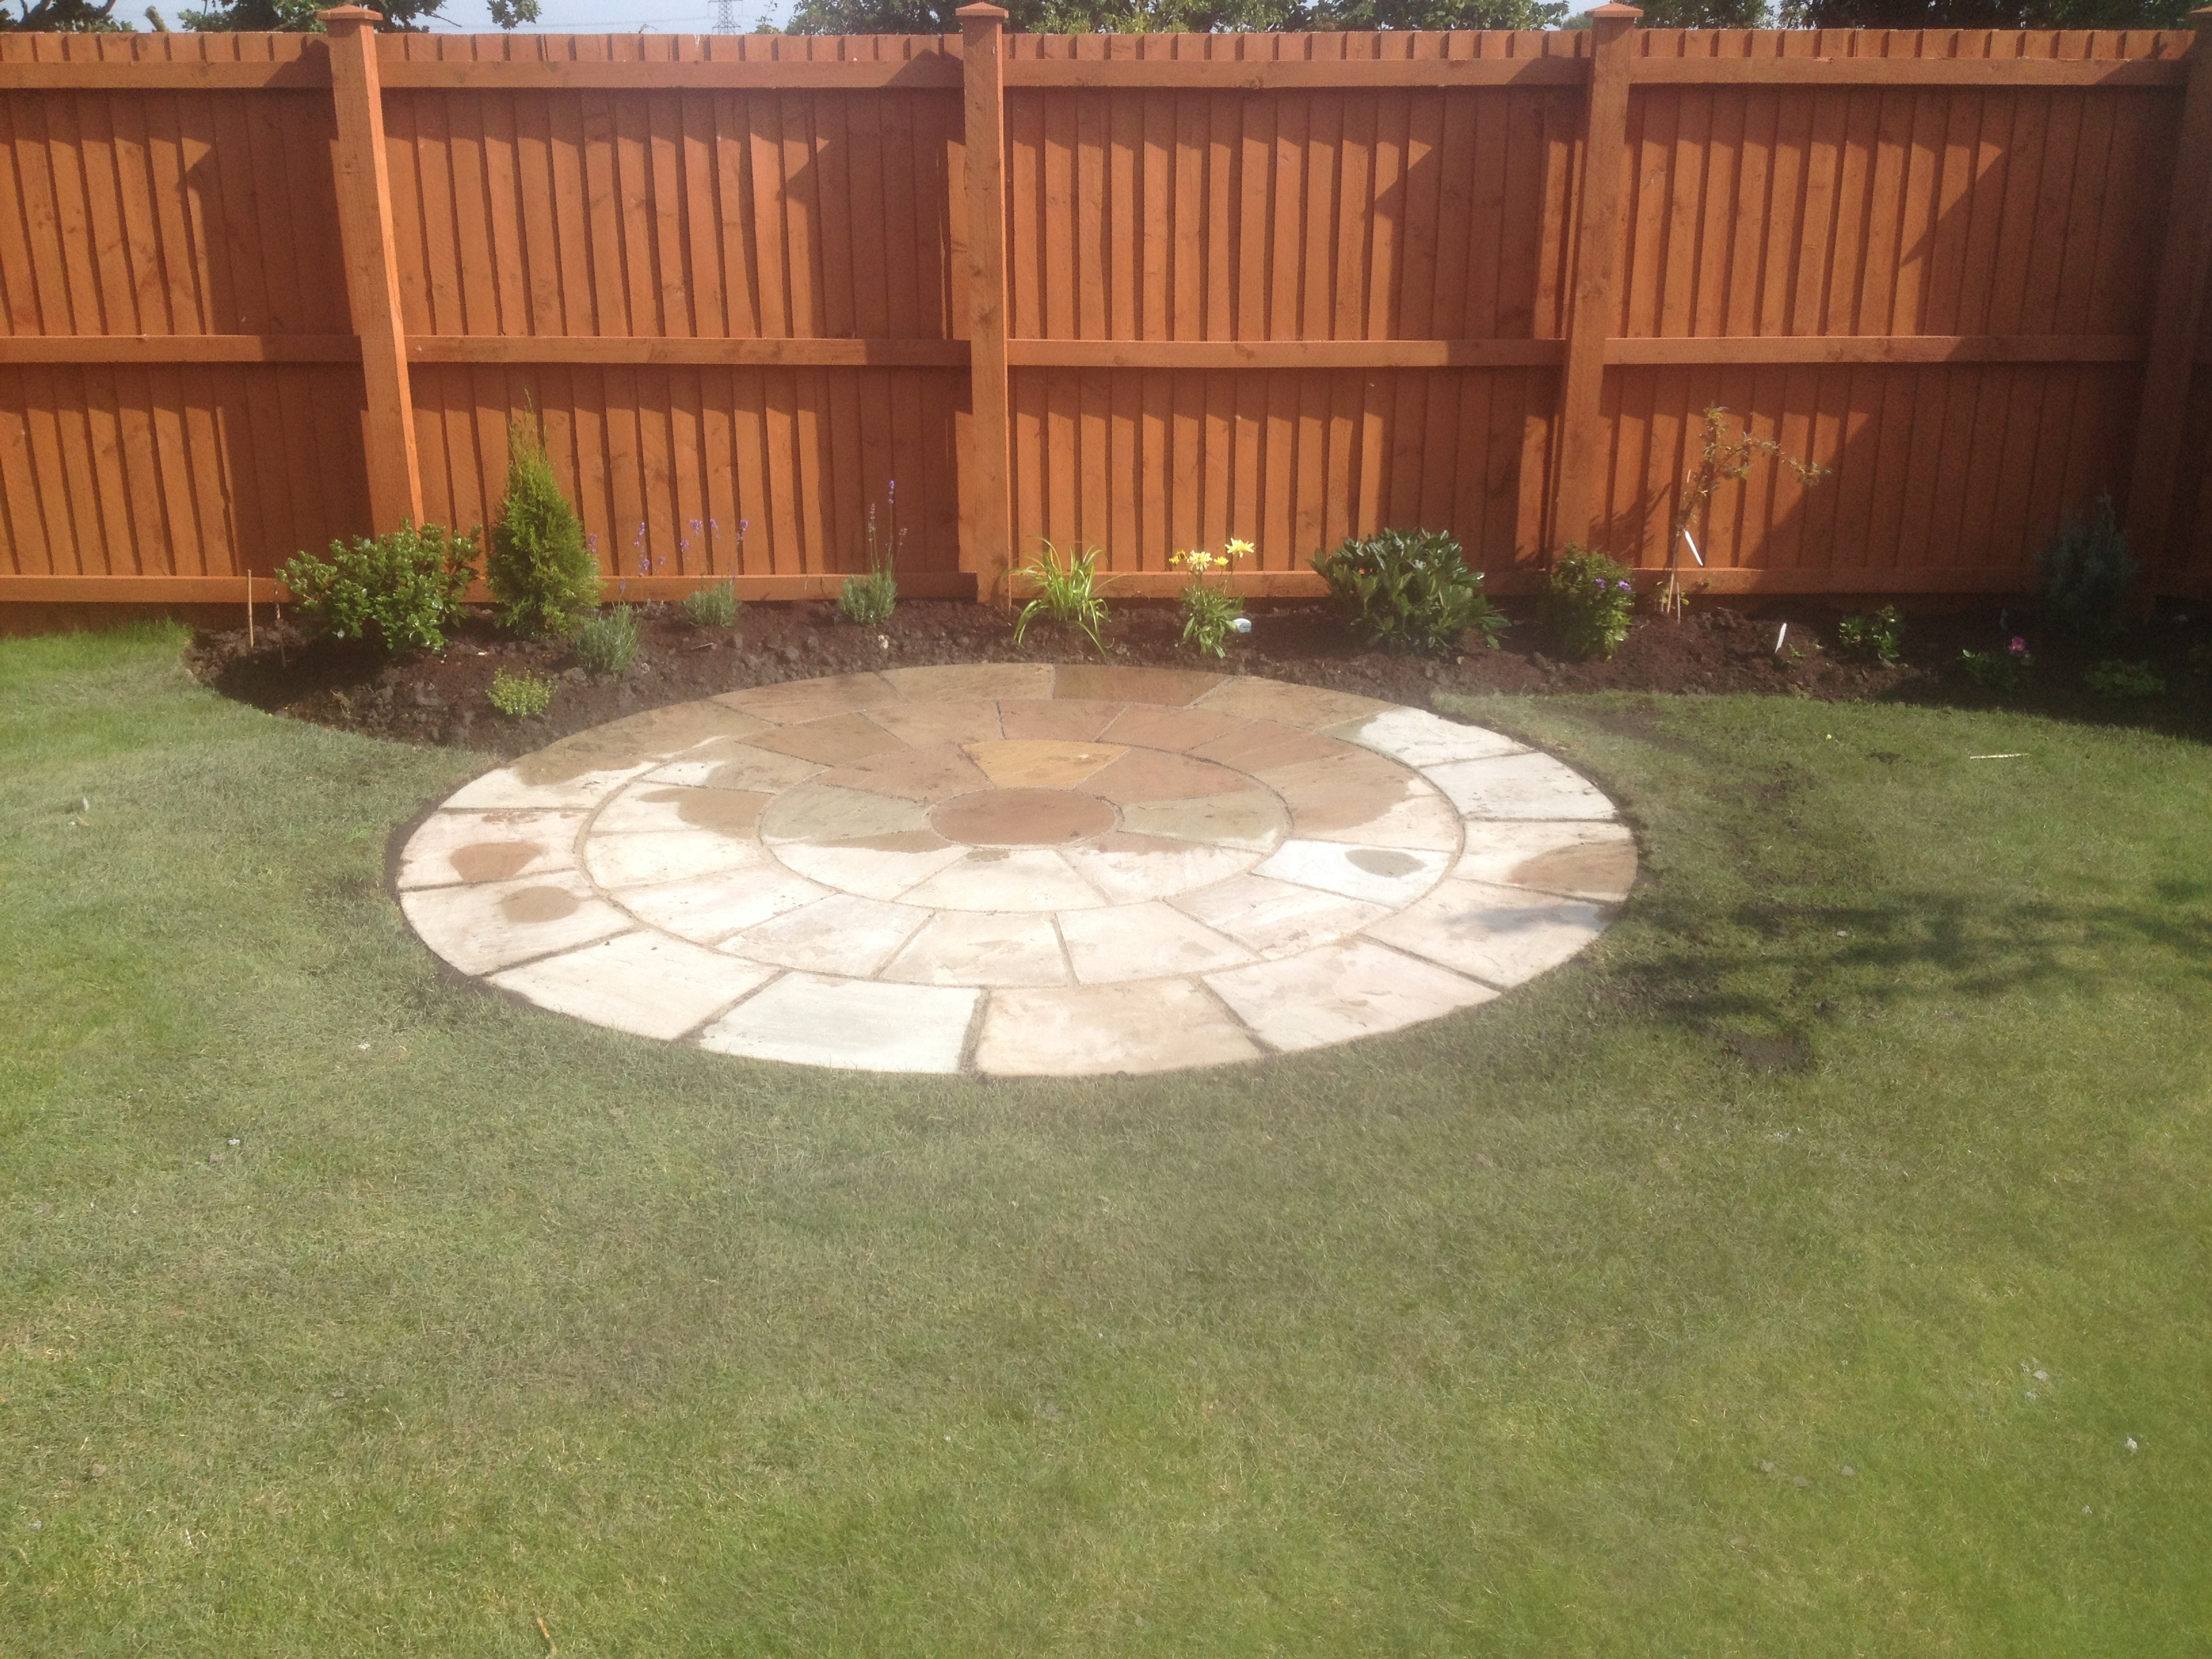 A simple paving circle